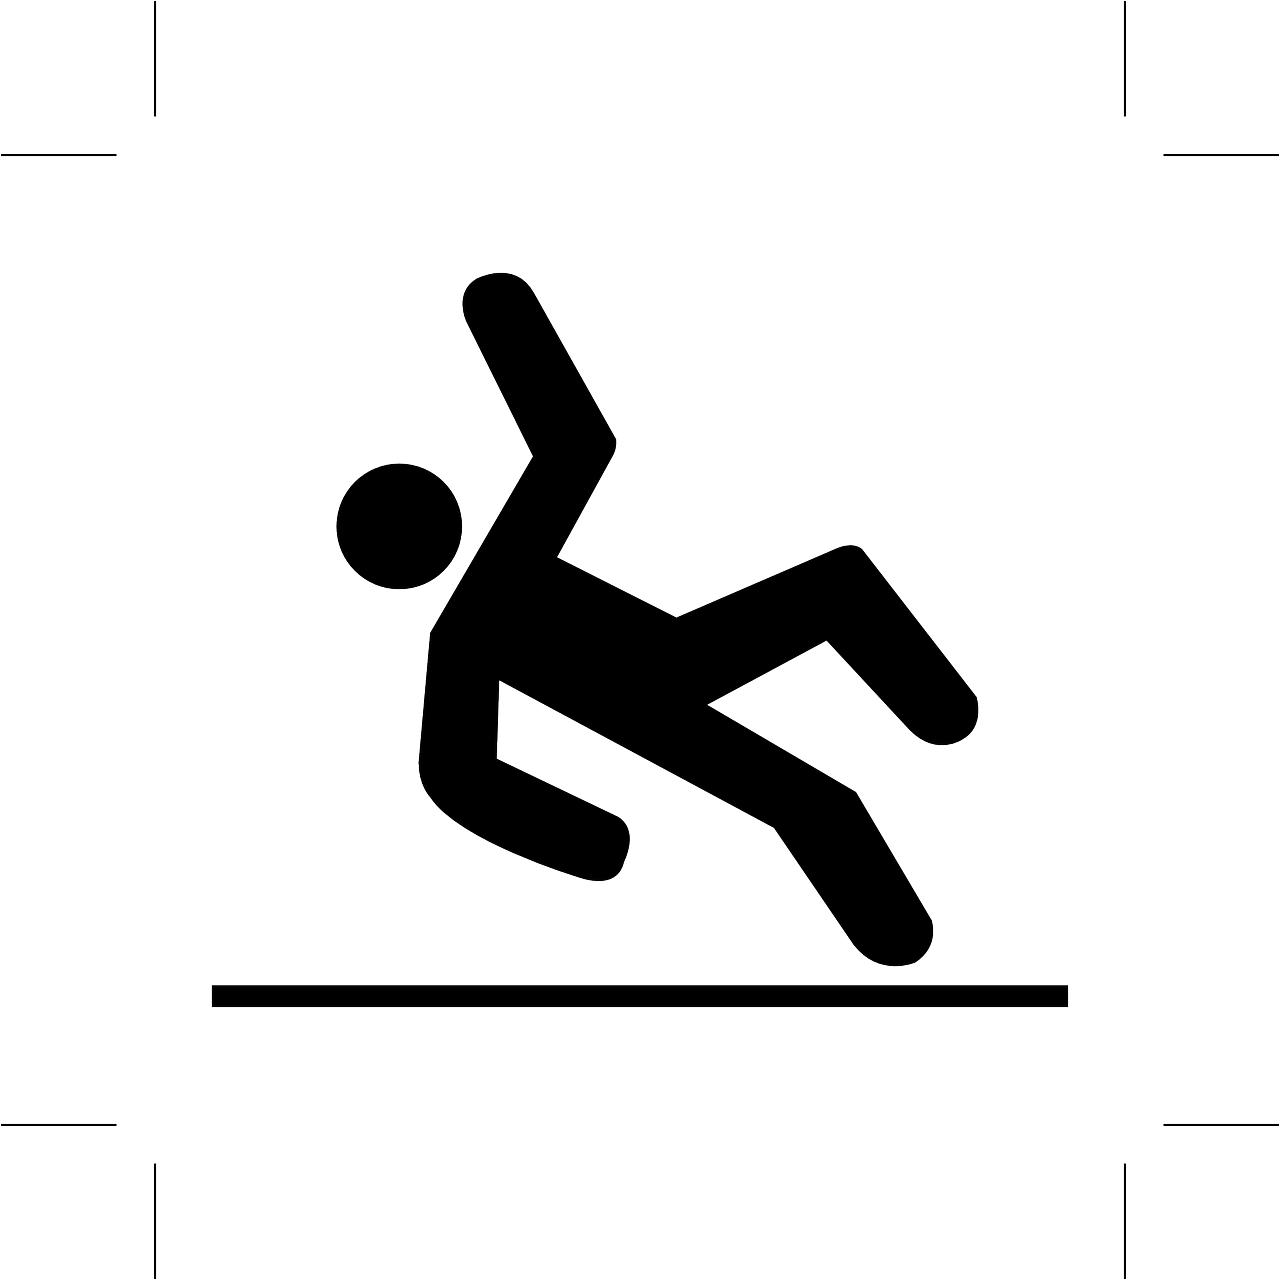 4 Simple Steps to Prevent Falling Pt. 2